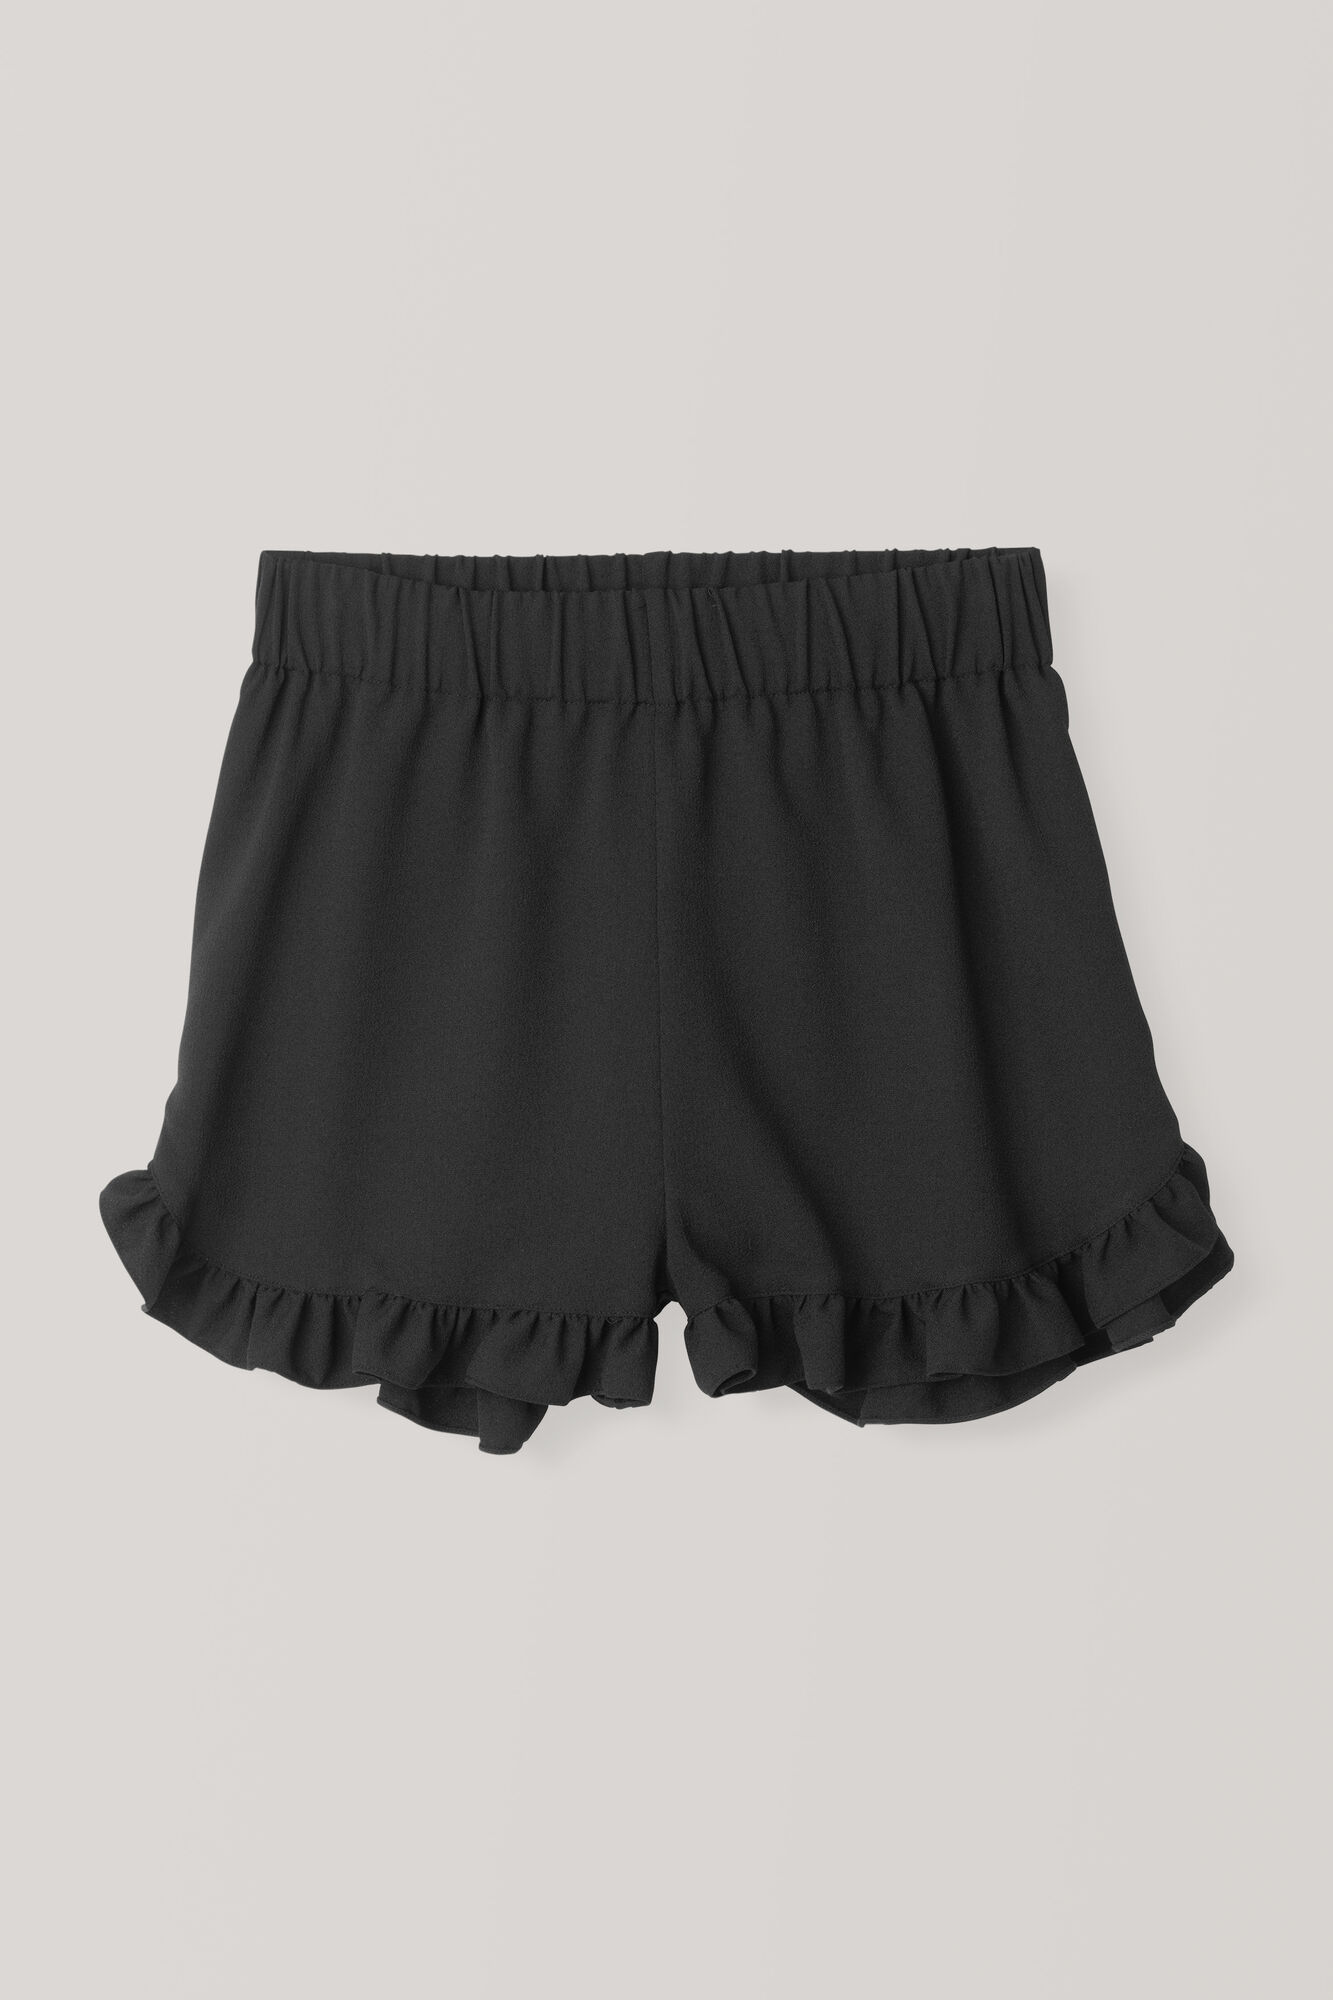 Heavy Crepe Shorts, Black, hi-res